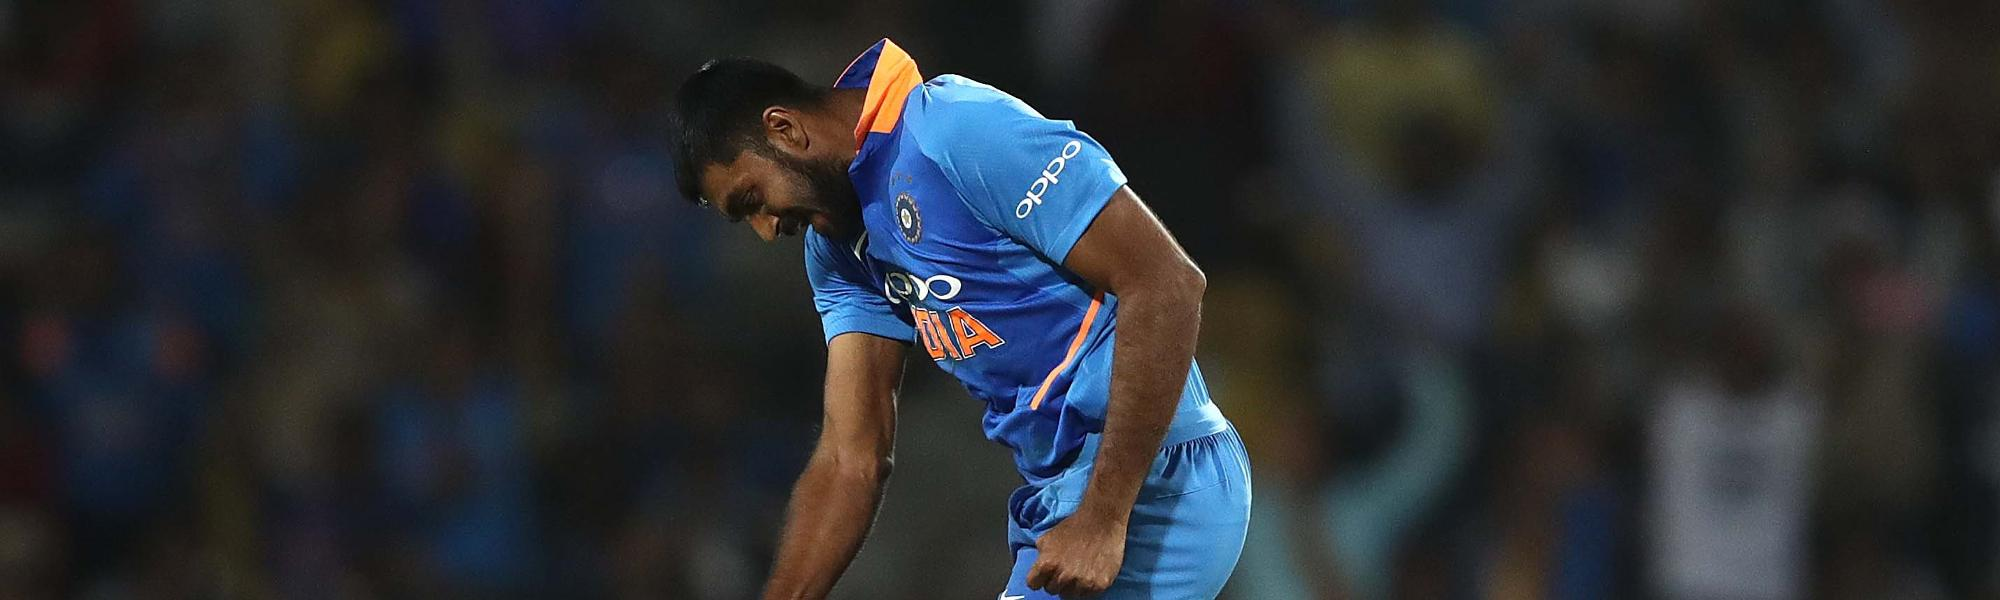 'The confidence he has gained with his batting is rubbing on to his bowling as well' – Bharat Arun on Vijay Shankar